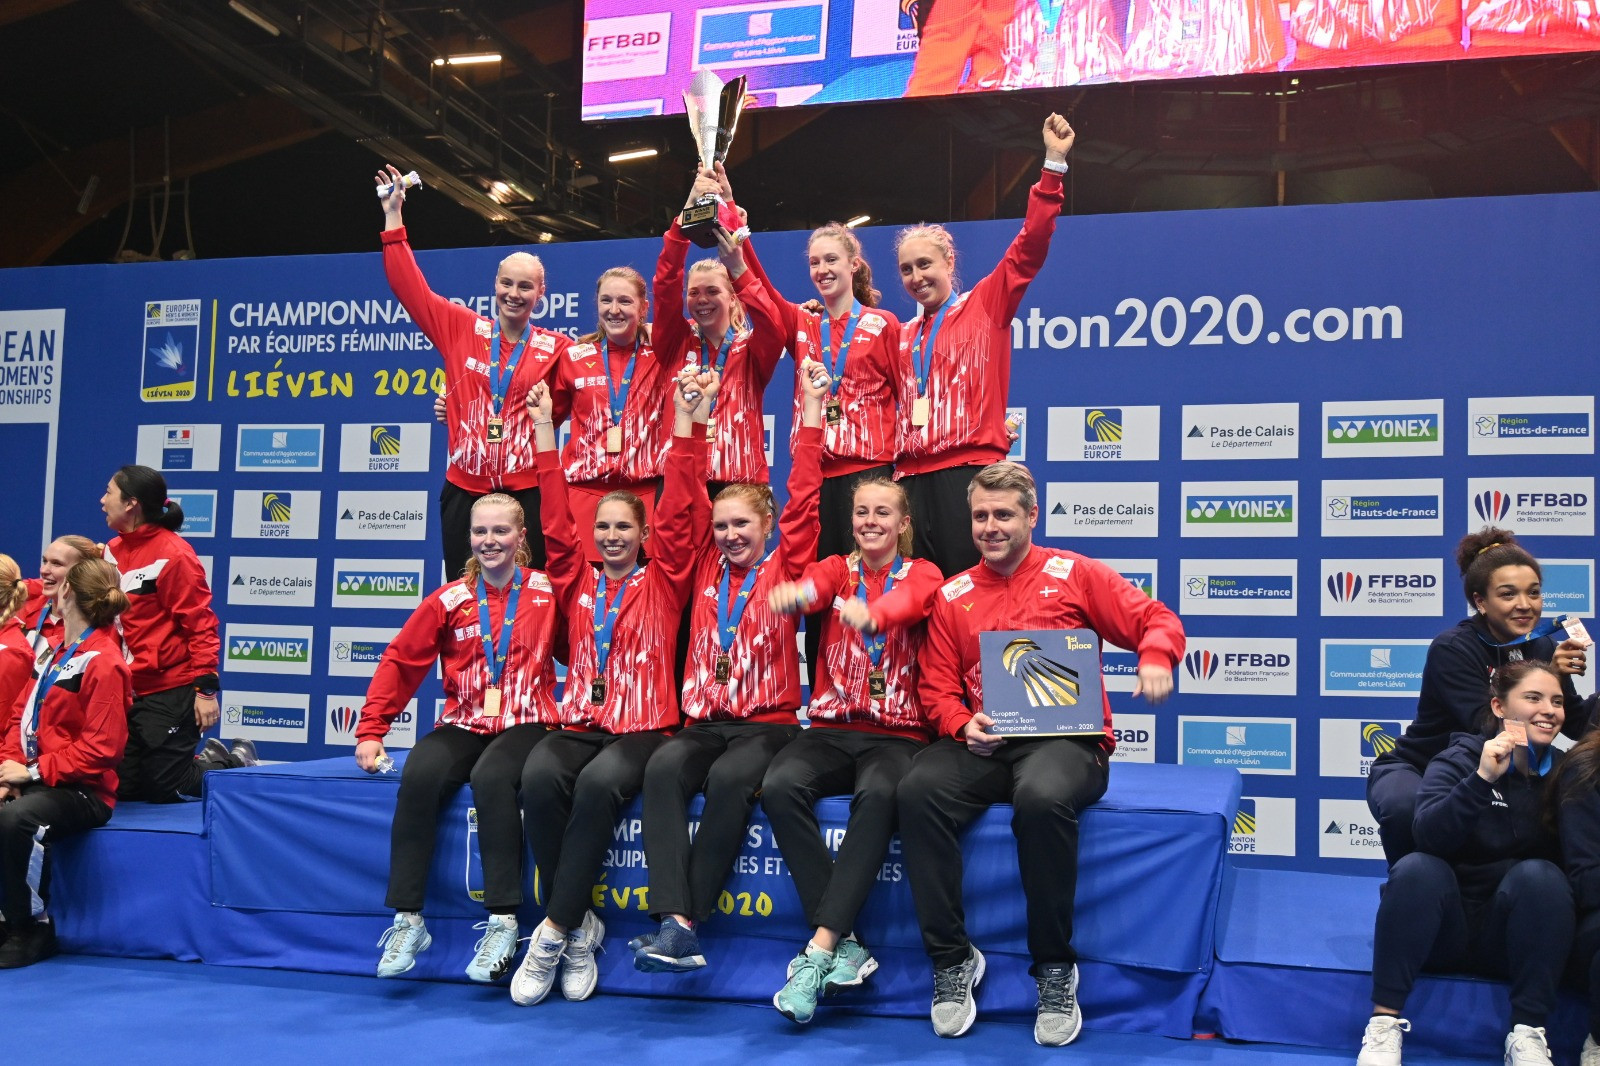 Double delight for Denmark as they take men's and women's titles at European Team Badminton Championships